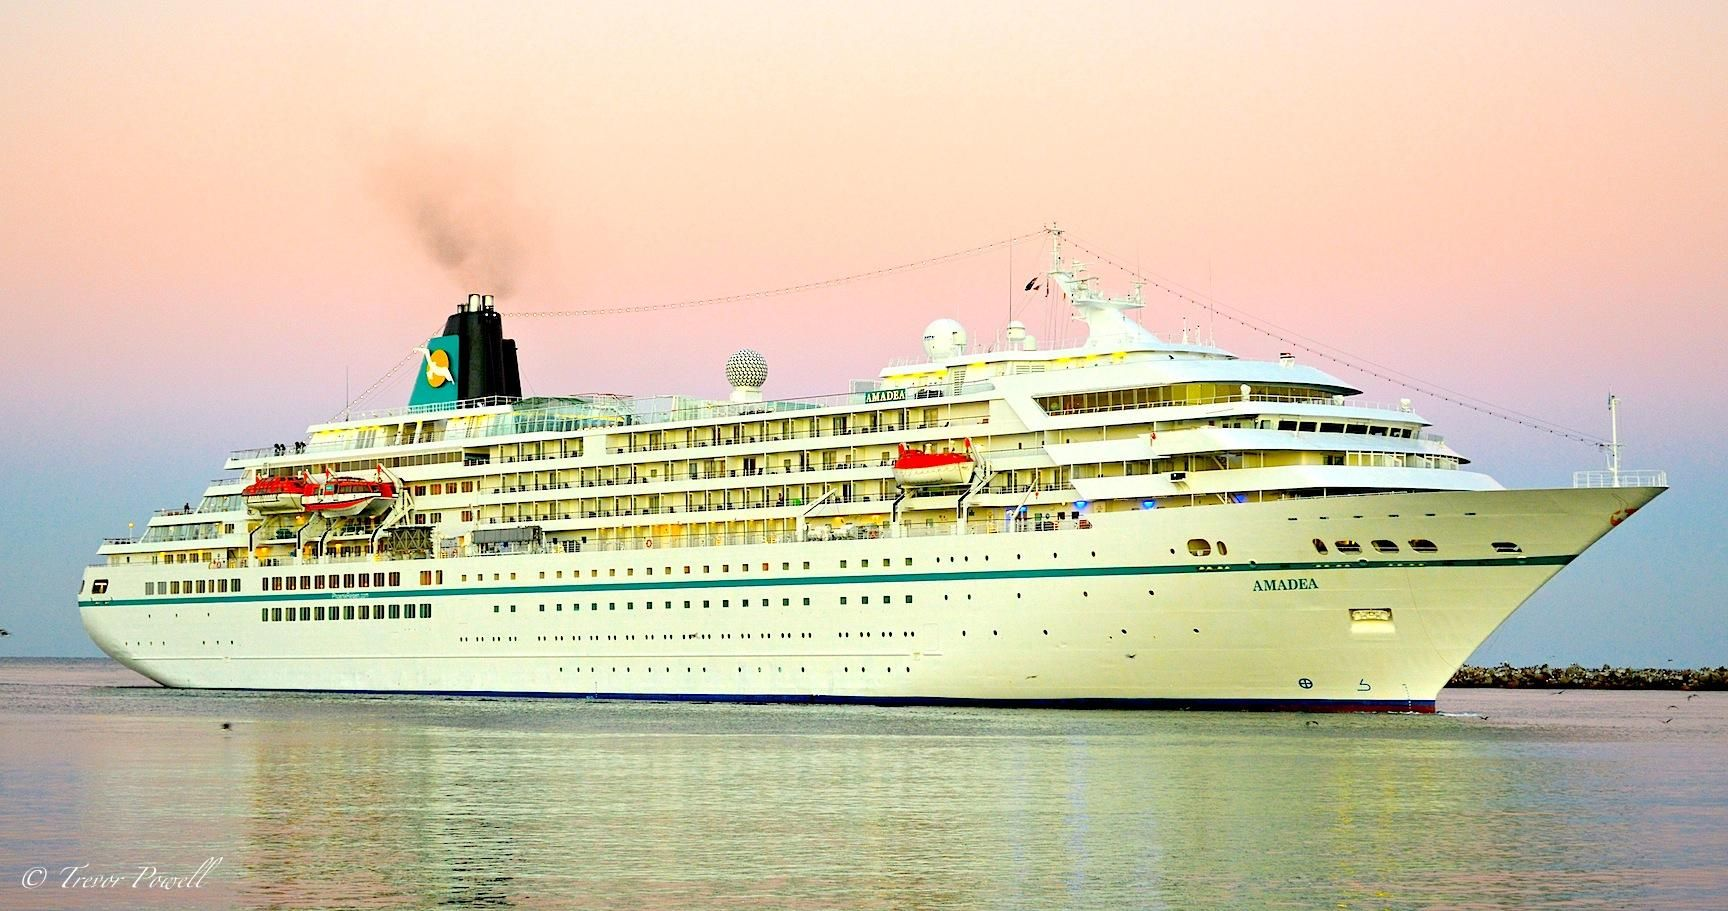 Carnival Fantasy Itinerary Schedule Current Position - Amadea cruise ship itinerary